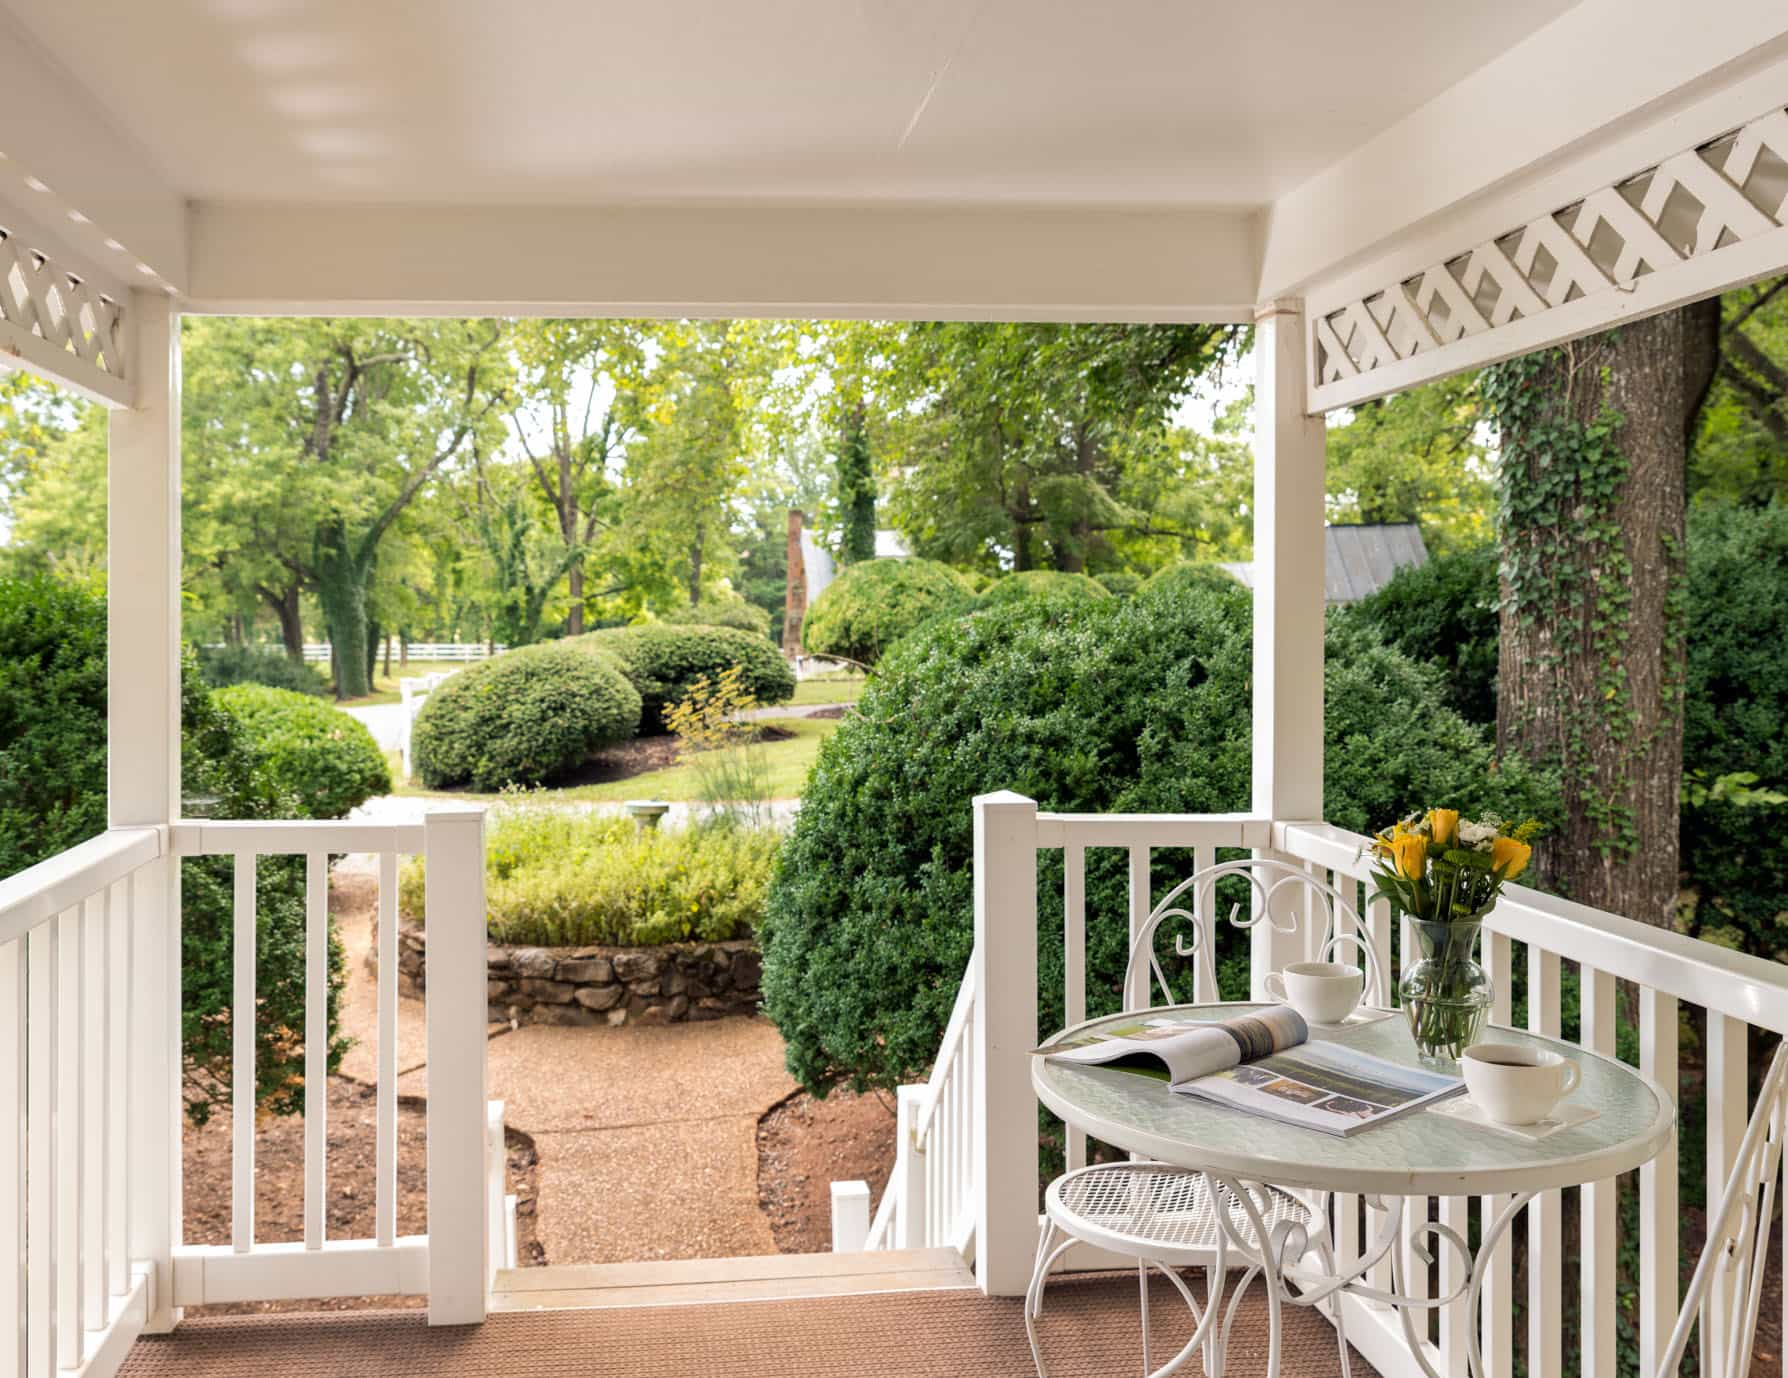 Private covered patio with a small breakfast table for two and garden views